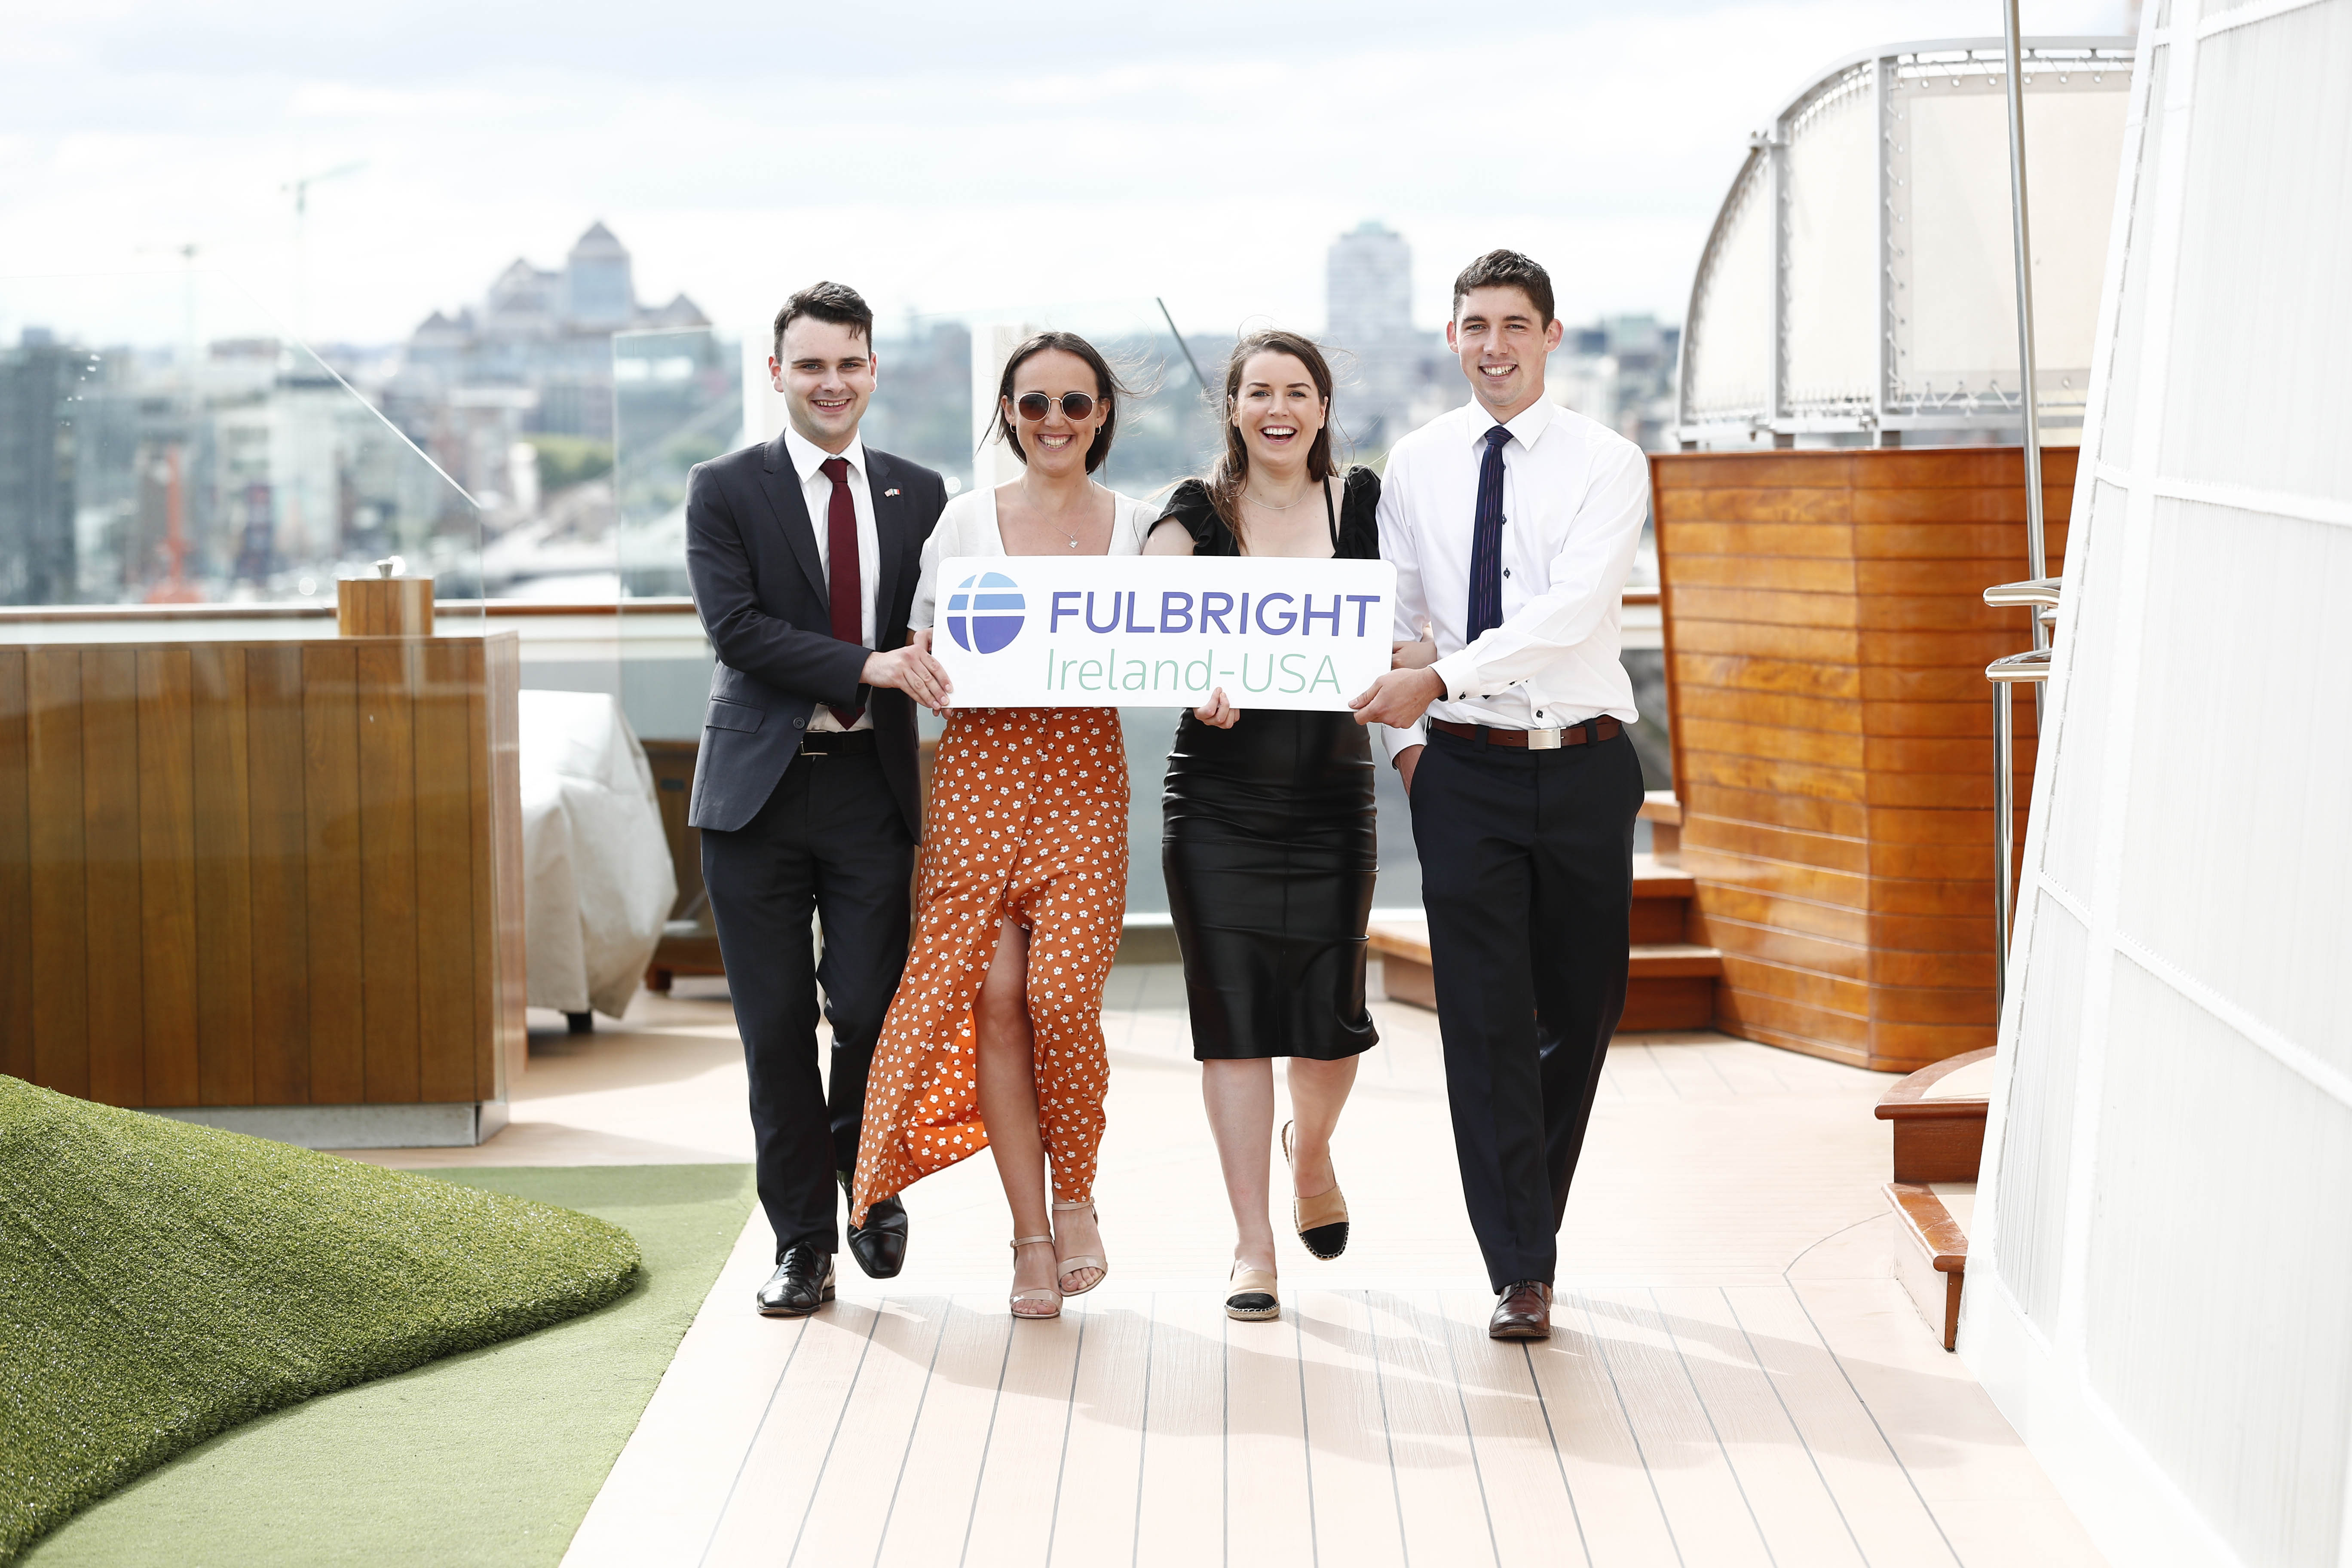 Fulbright Scholars get ready to set sail on the The World!